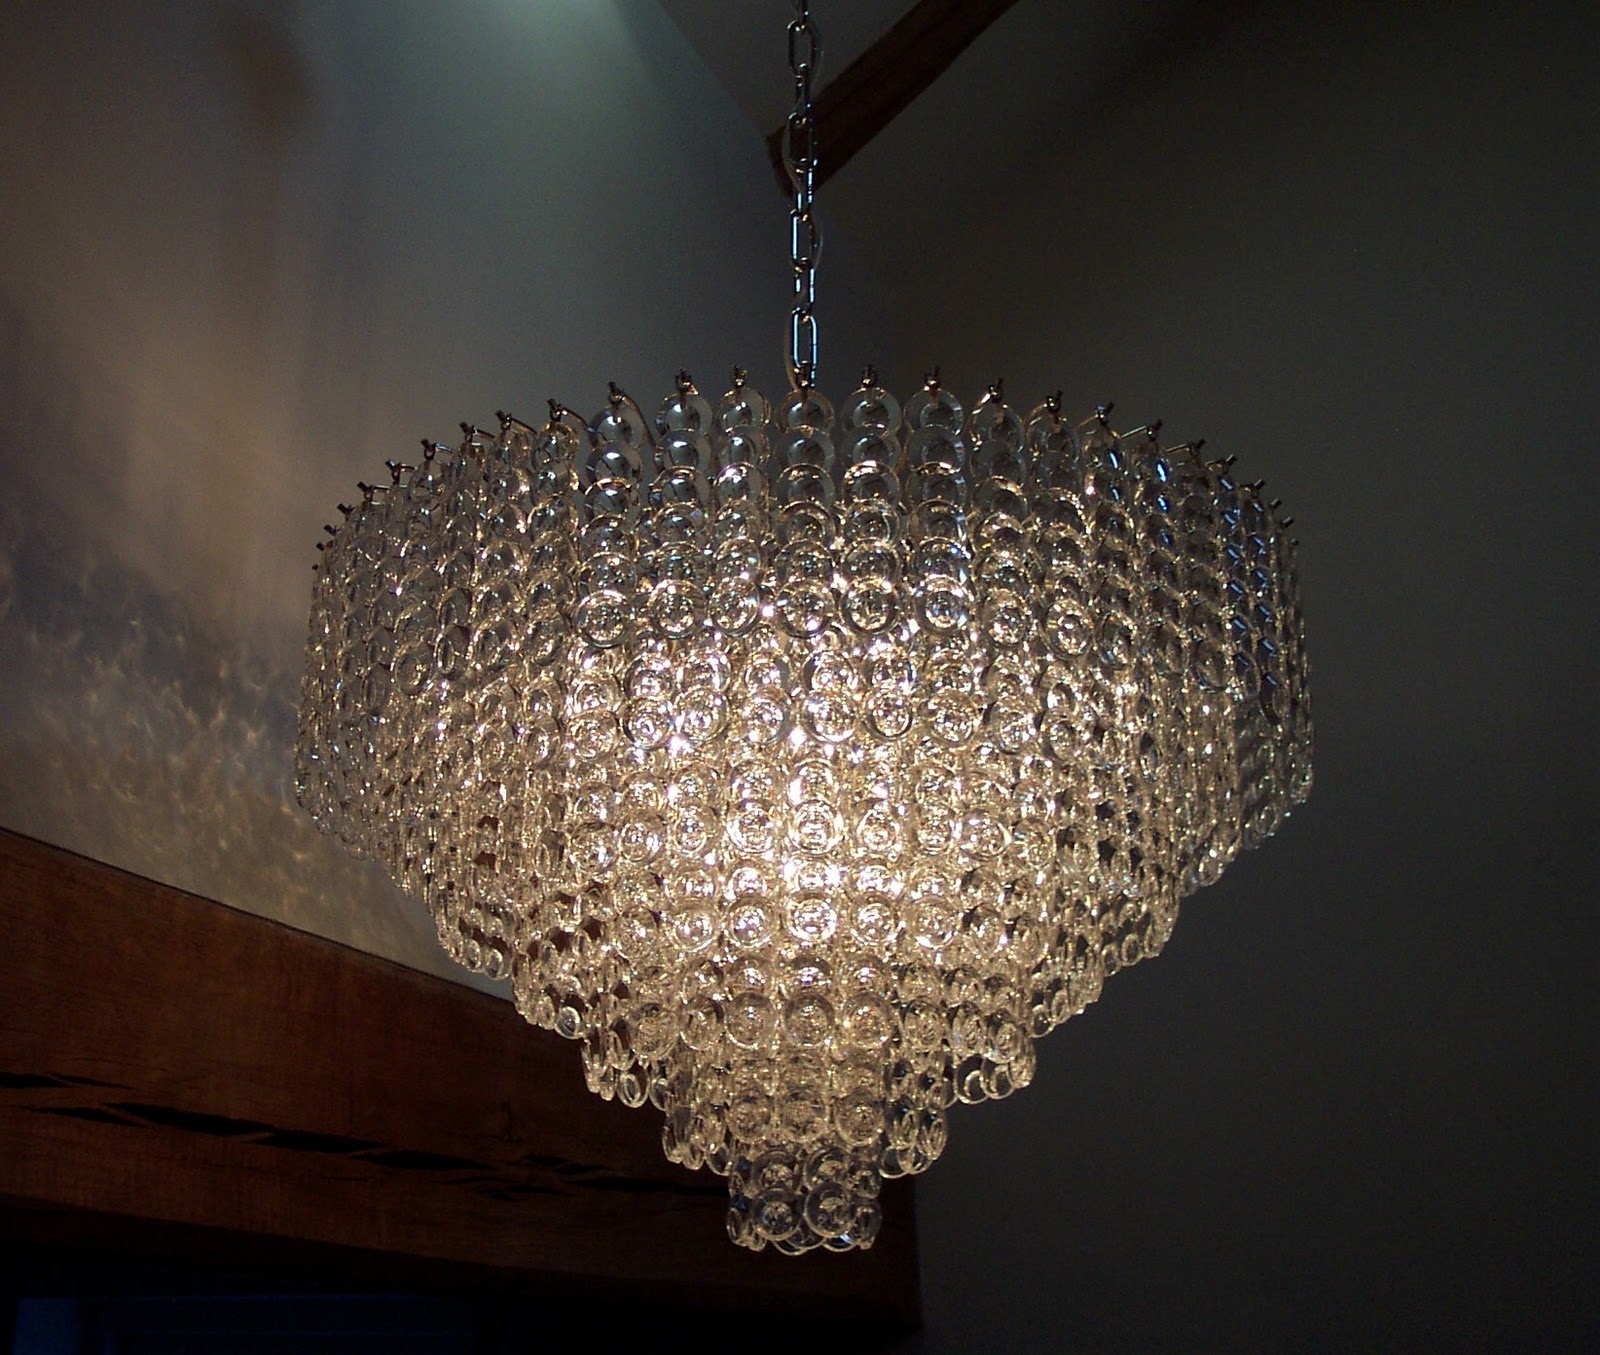 20thcenturycollectablescouk With Regard To Italian Chandeliers Contemporary (Image 1 of 15)